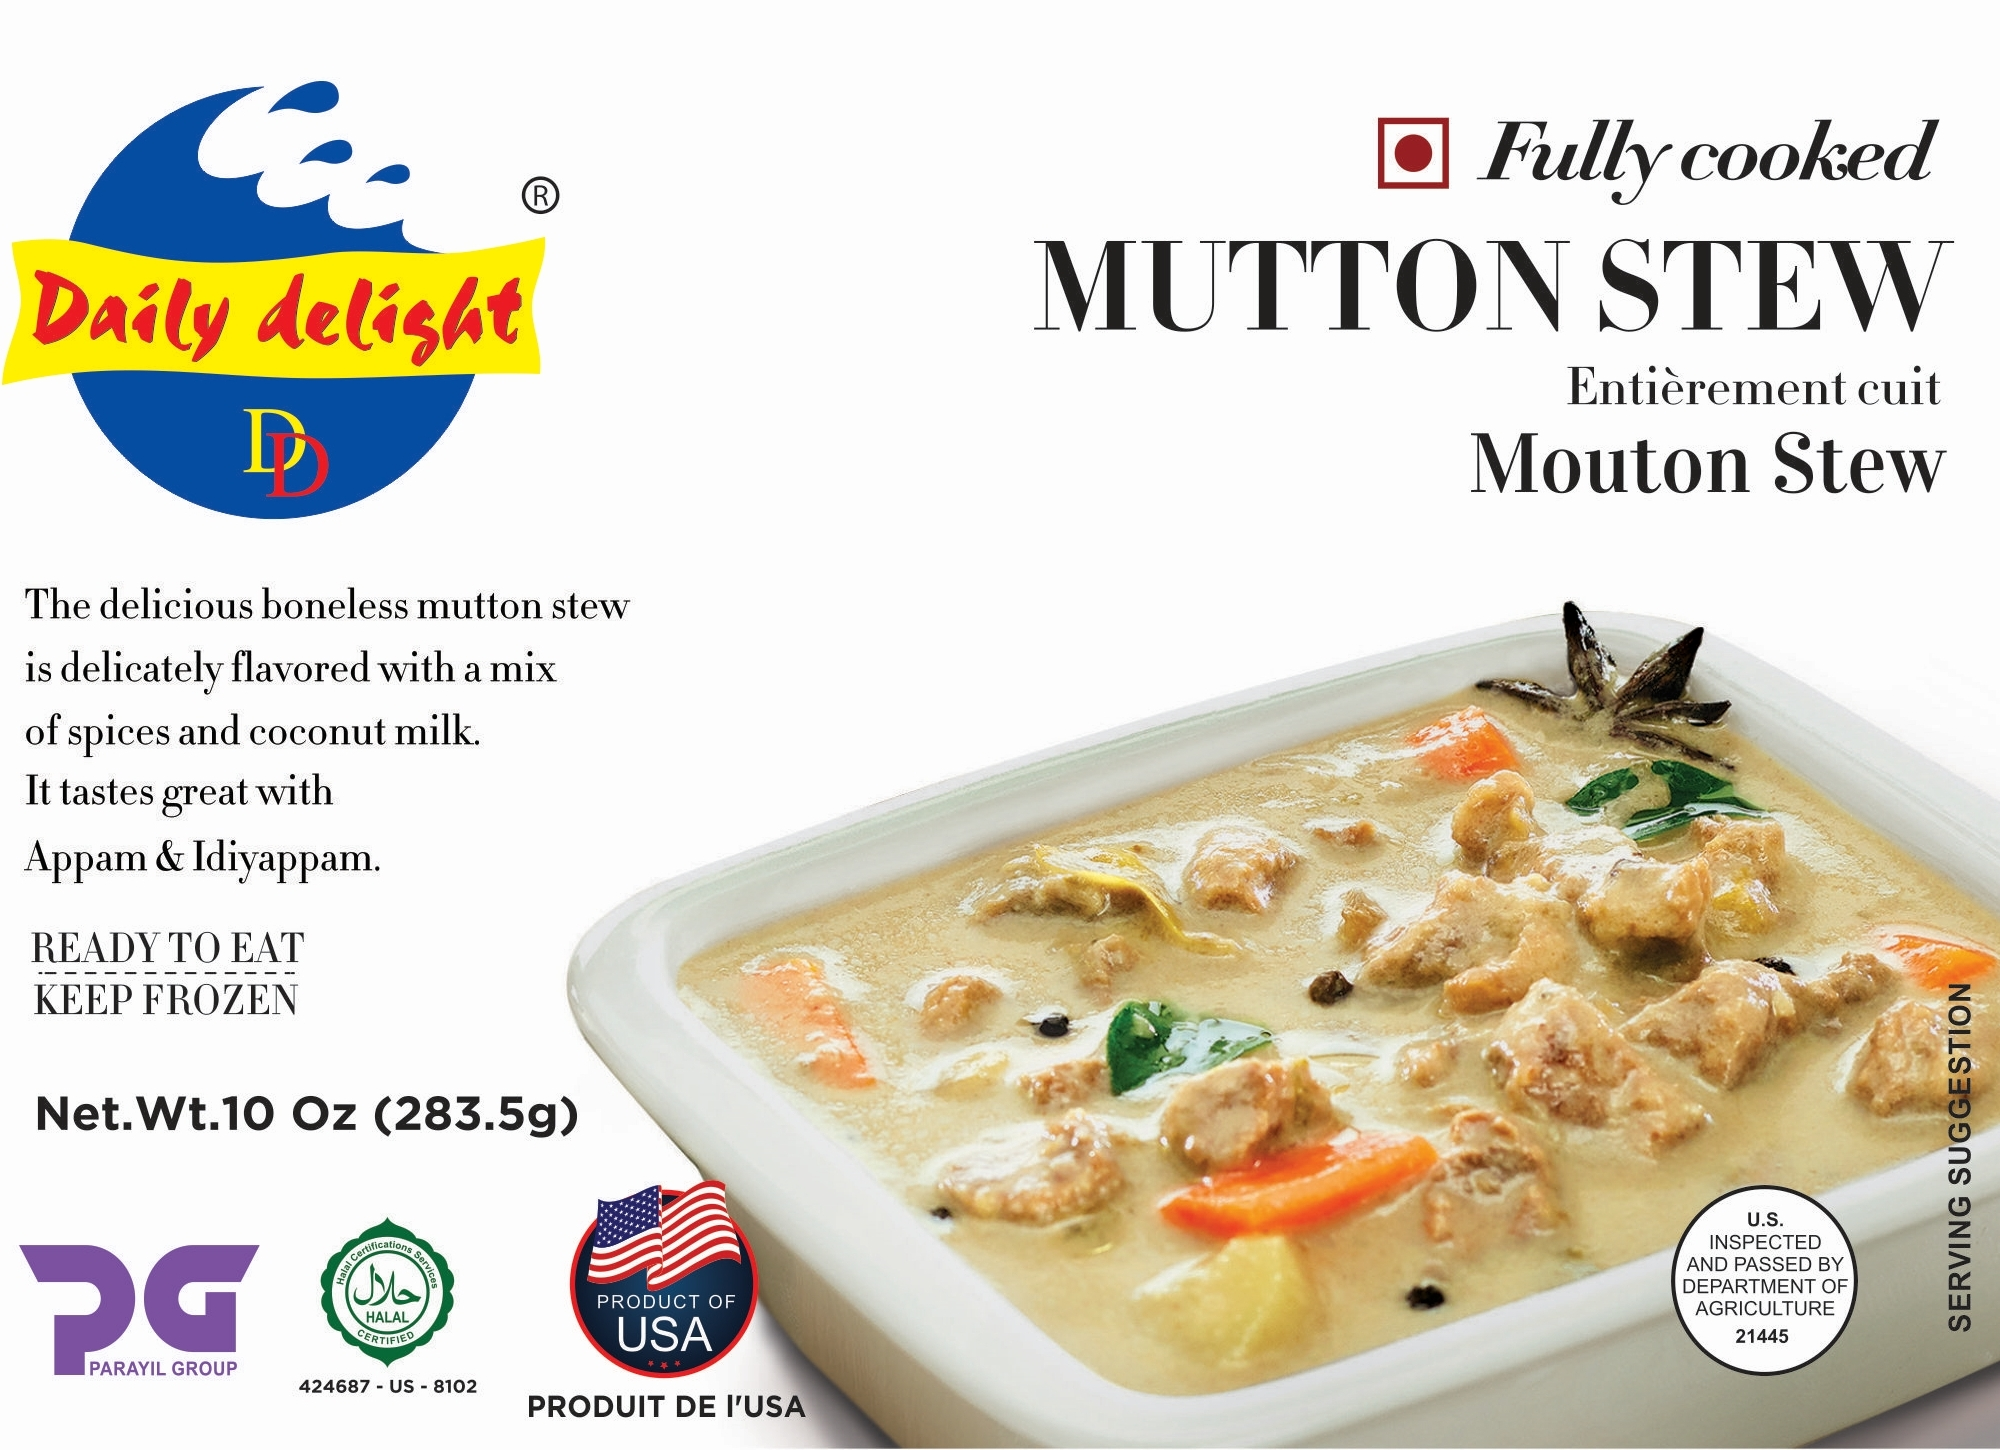 Daily Delight Mutton Stew